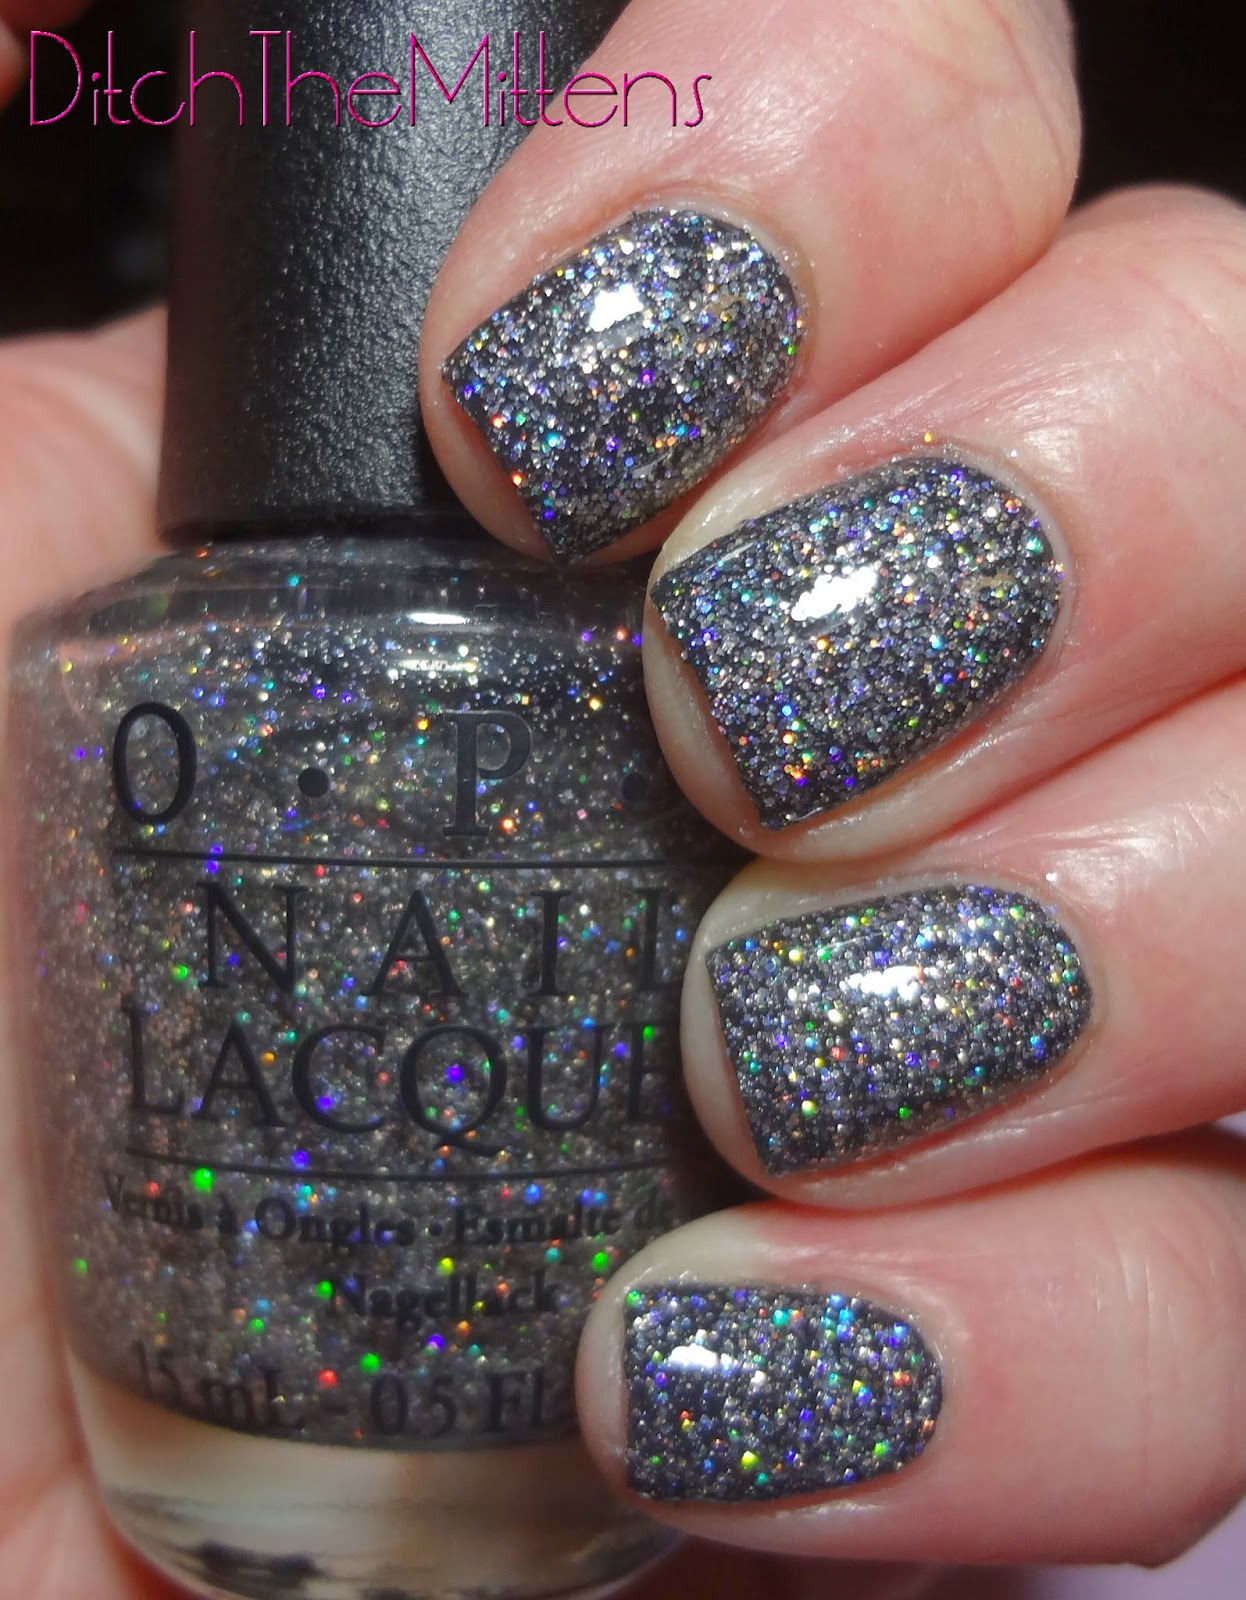 Ditch the Mittens: OPI Nordic Collection Fall/Winter 2014/2015 My Picks